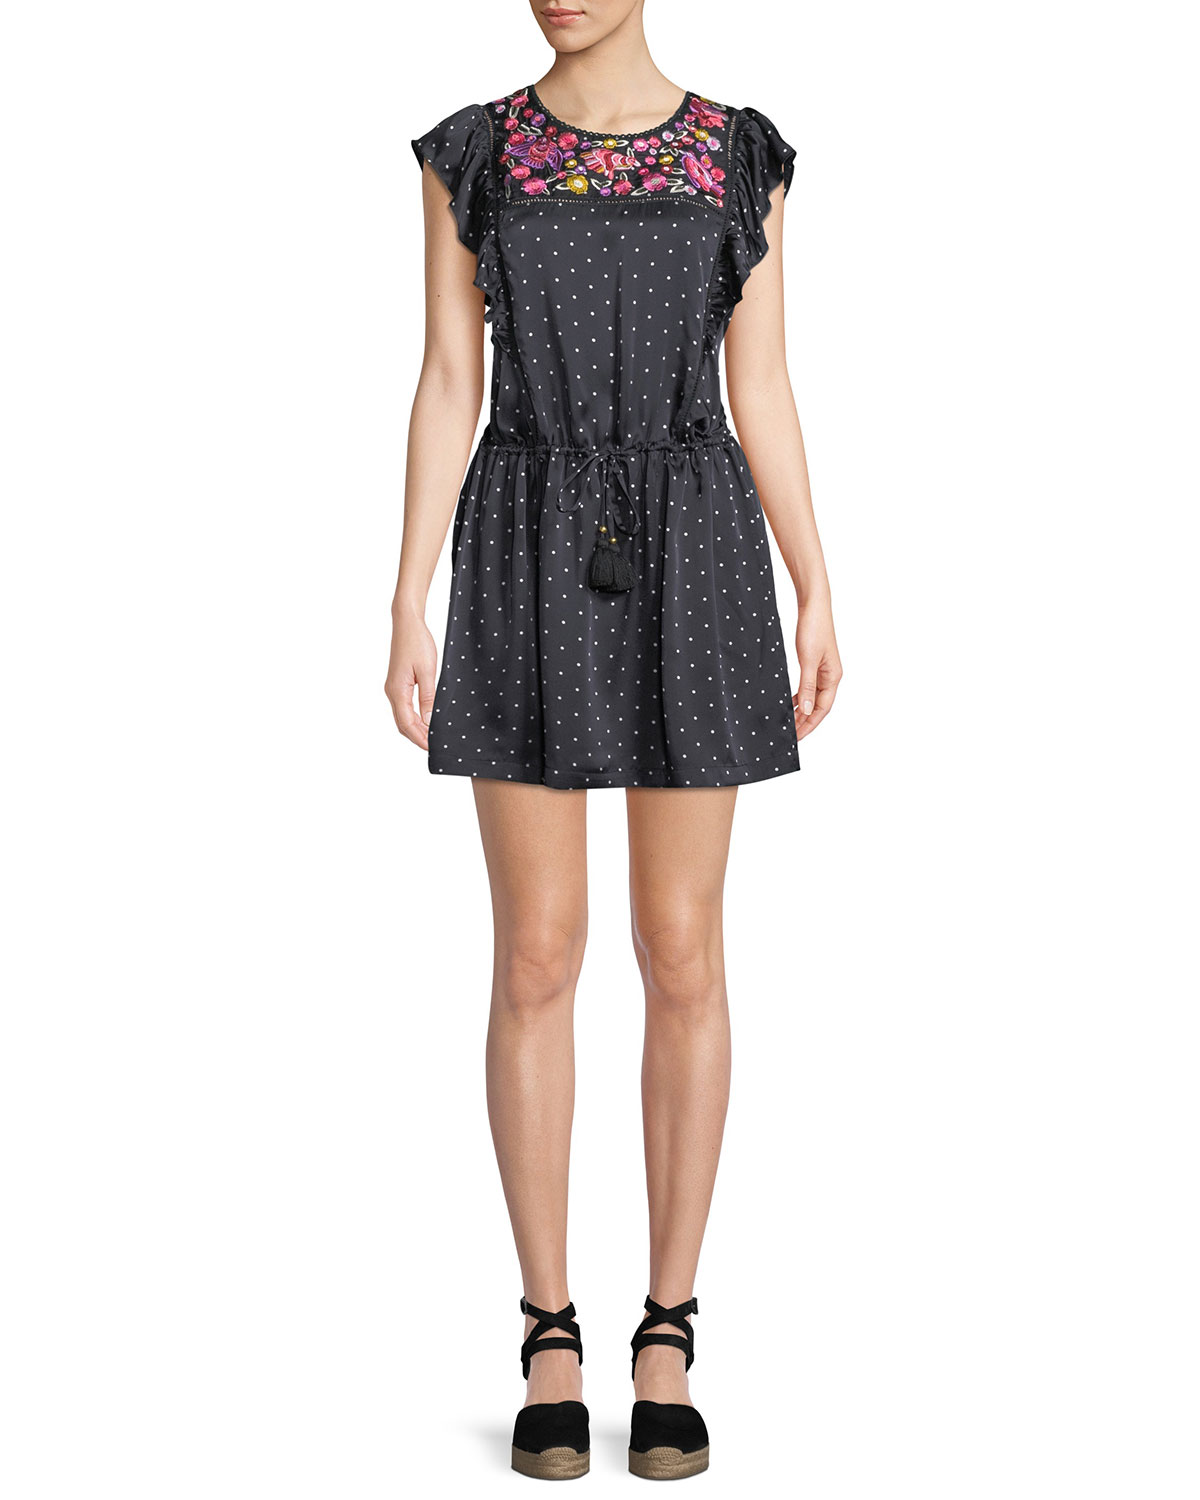 FIGUE Theresa Aztec-Dot Floral-Embroidered Bib Cap-Sleeve Silk Satin Dress in Black